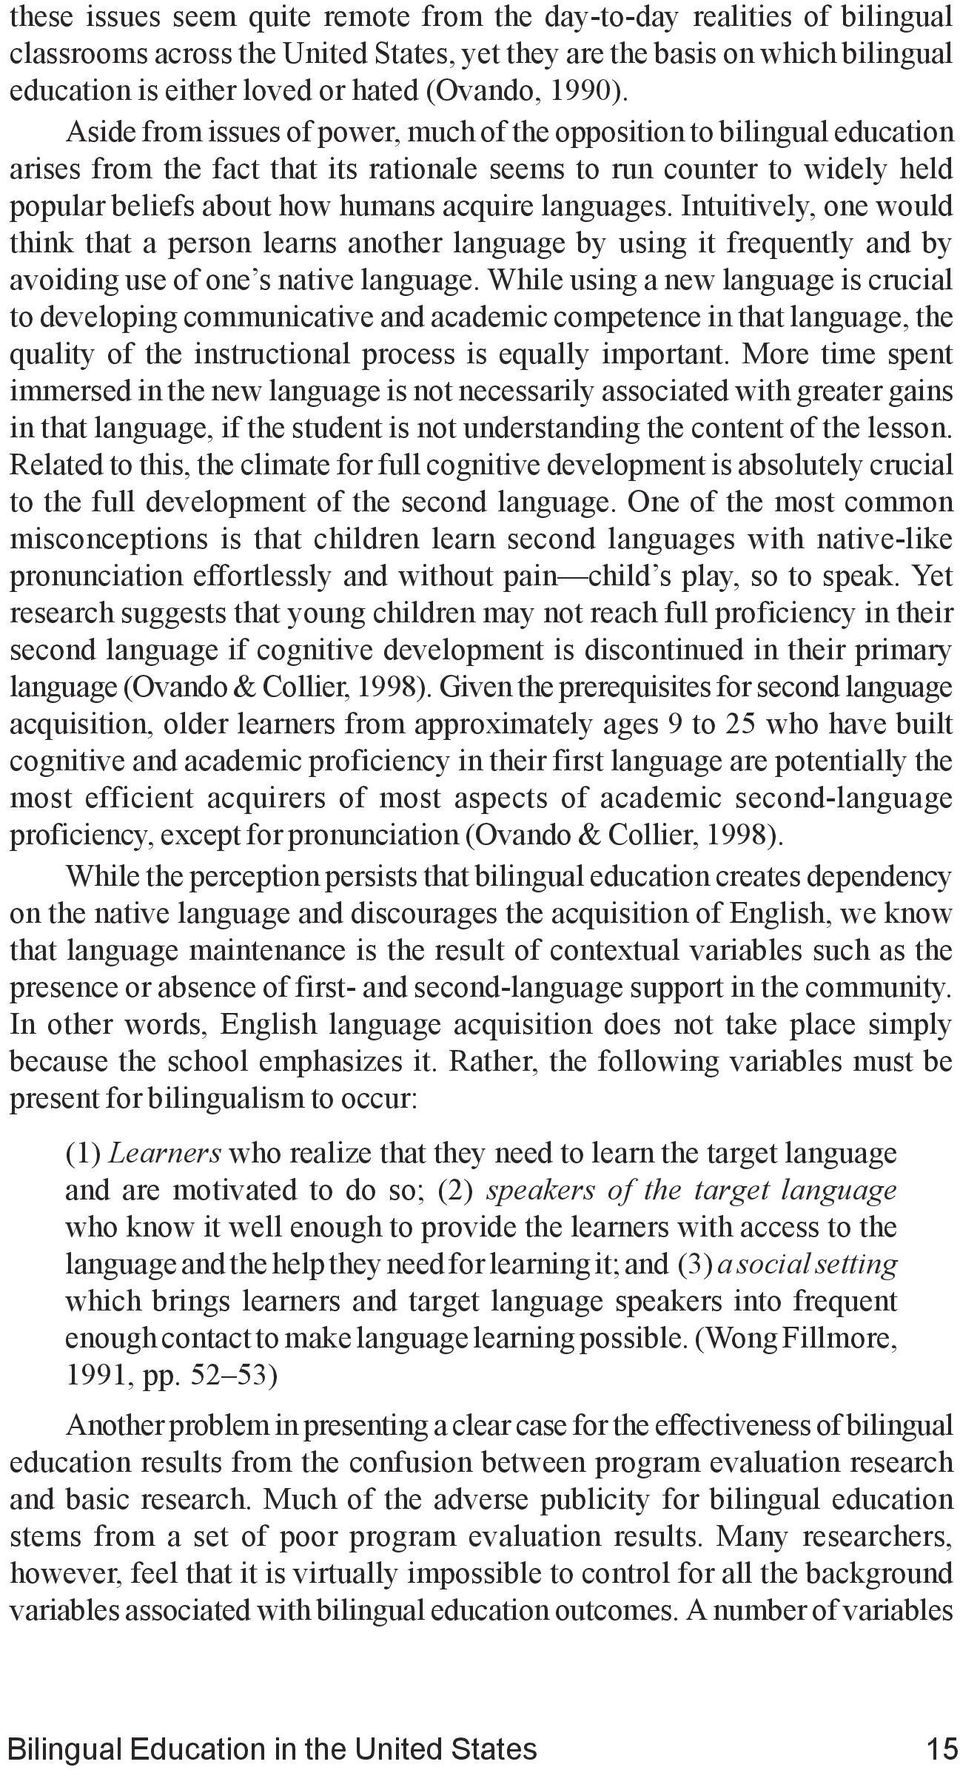 Aside from issues of power, much of the opposition to bilingual education arises from the fact that its rationale seems to run counter to widely held popular beliefs about how humans acquire